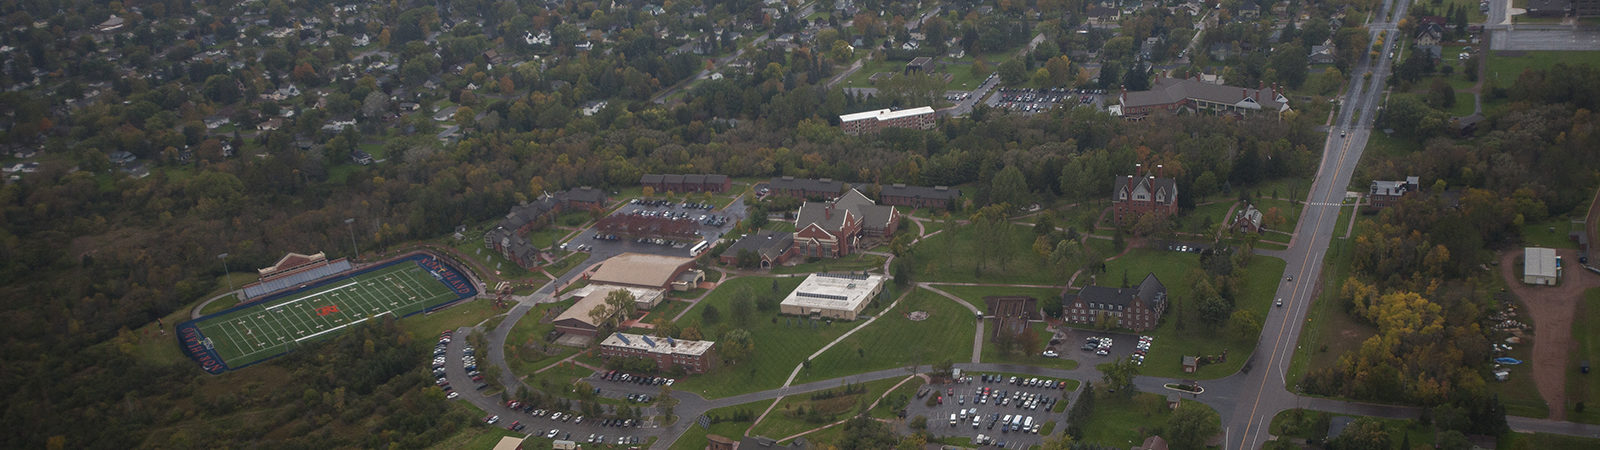 Aerial shot of campus and surrounding region